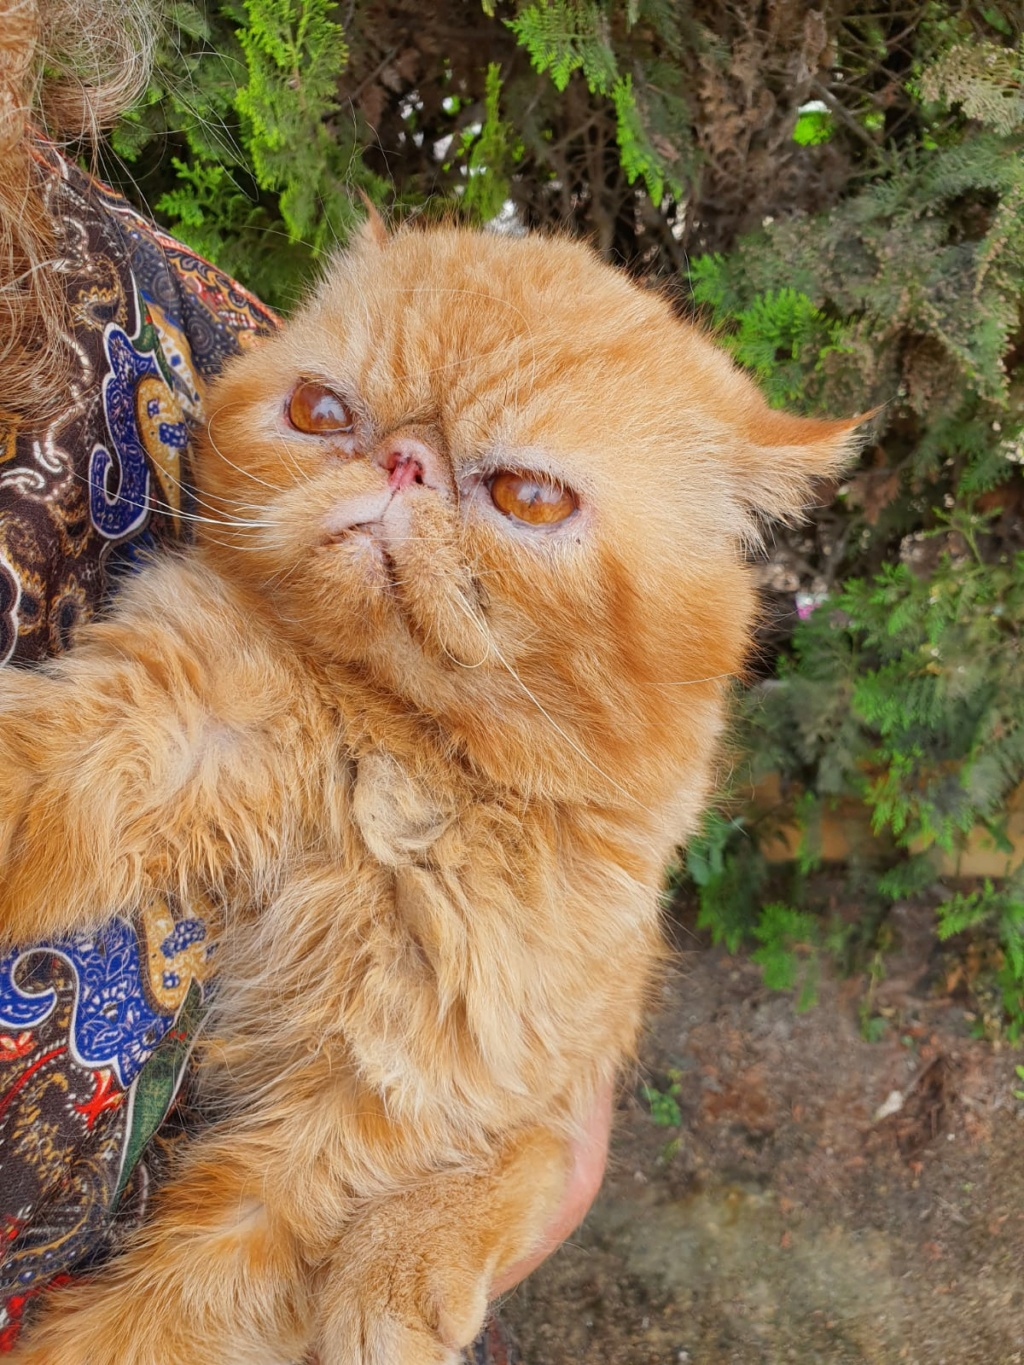 ISIDORO - XEXOTIC SHORTHAIR - ROUX - (MAM) Whats689